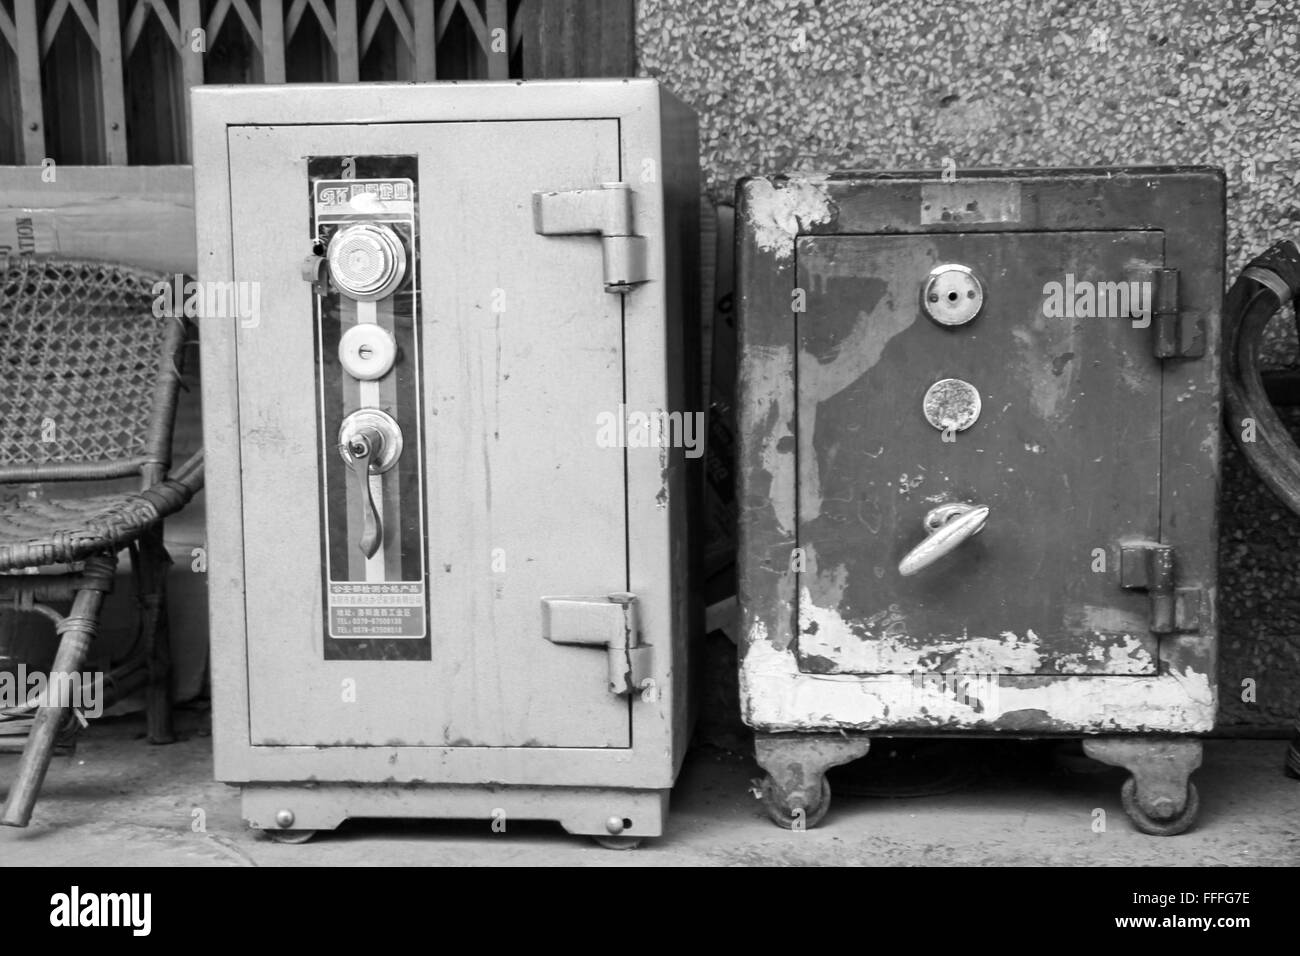 Ancient Safe sitting in the streets of Luang Prabang - Stock Image